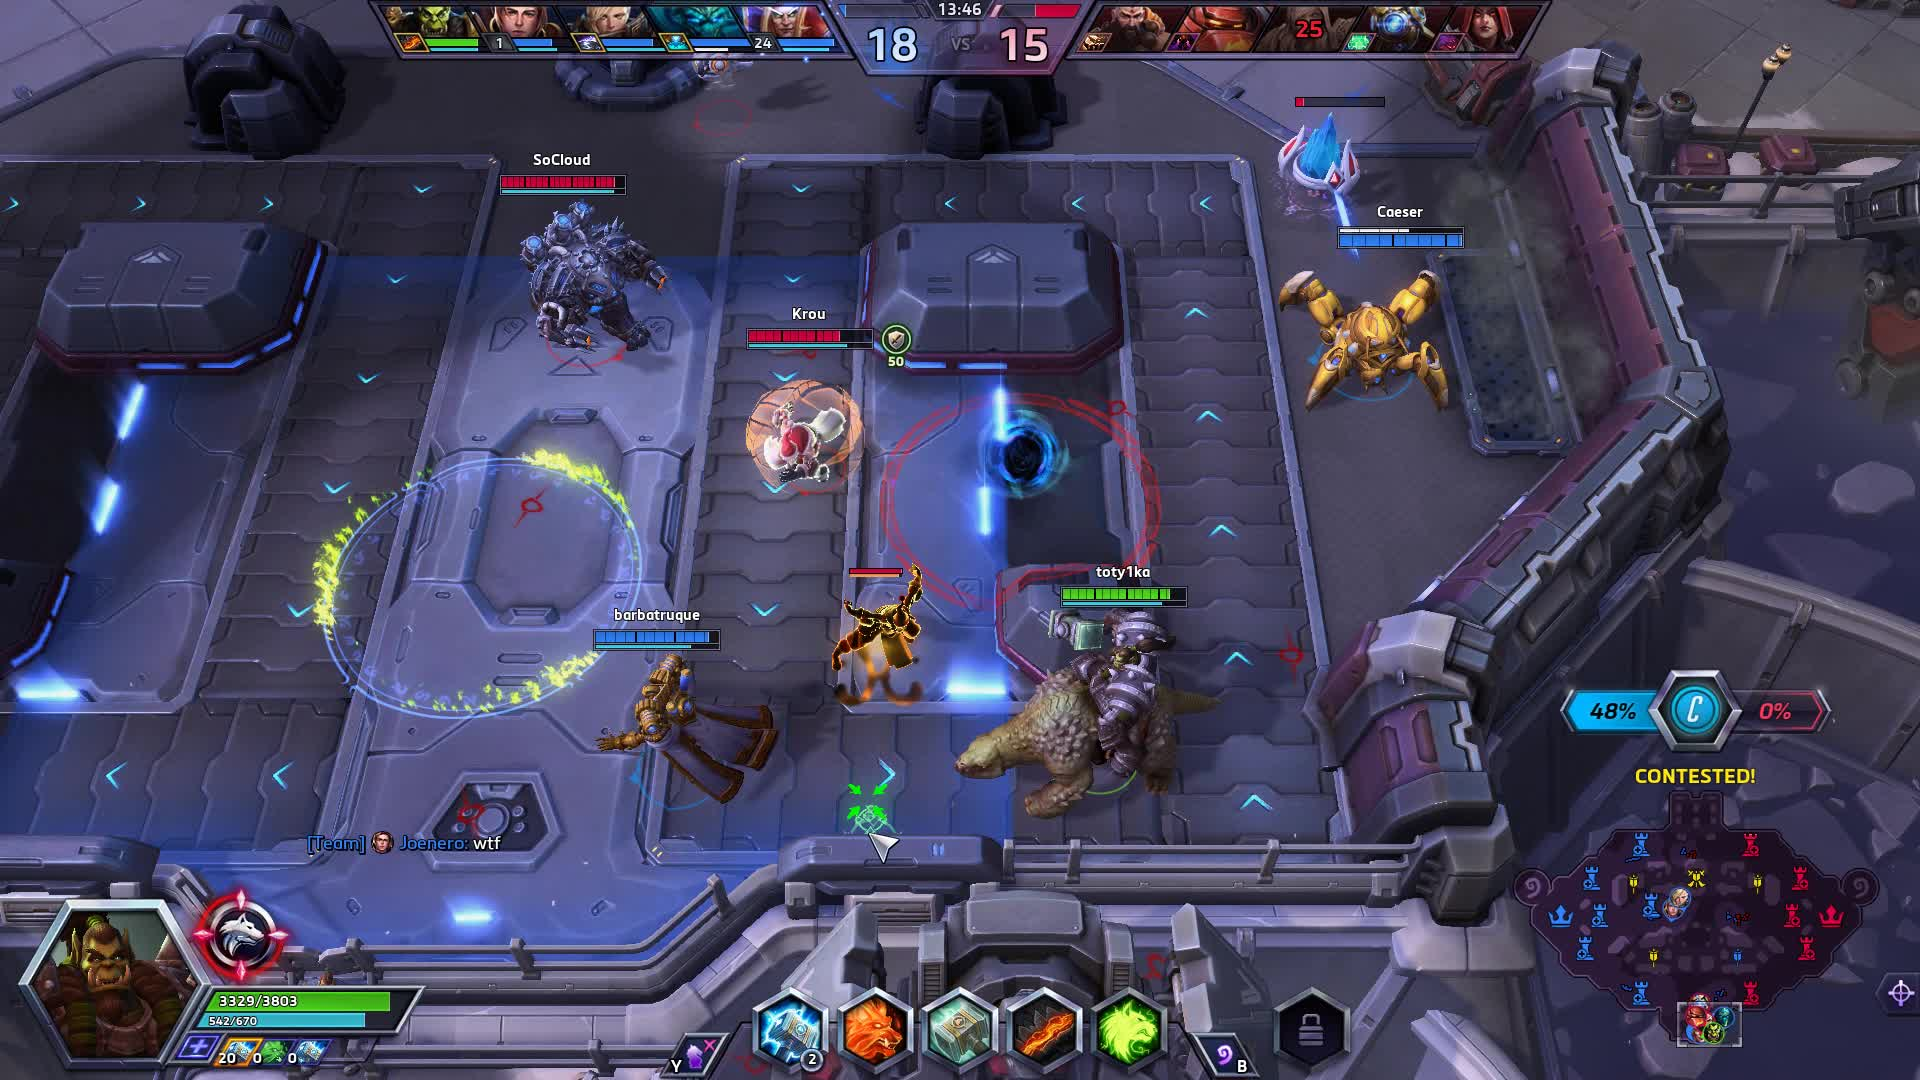 fight, hos, mace, melee, moba, pvp, shaman, warcraft, wow, Heroes of the Storm 01 GIFs